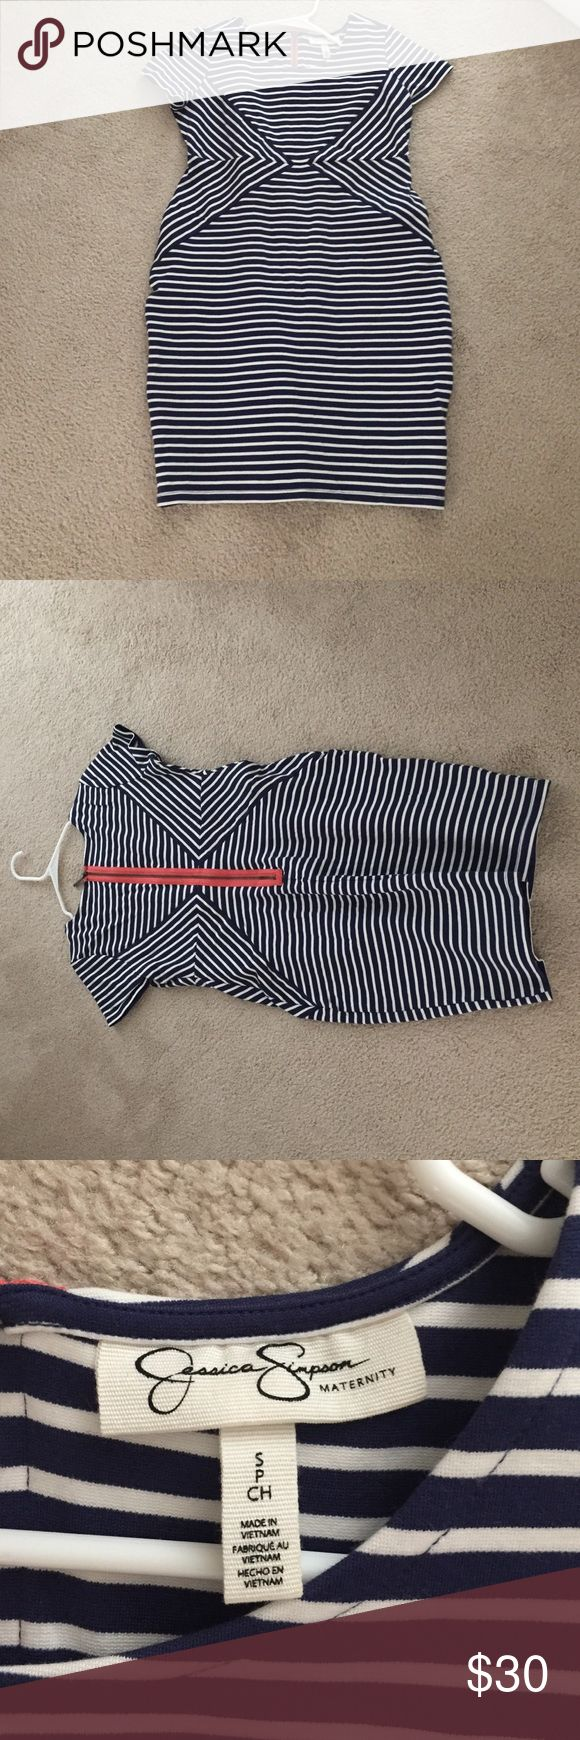 Jessica Simpson Maternity Dress - Worn Once Navy blue and white horizontal striped maternity dress with pop of coral color on the zipper in the back - WORN TWICE Jessica Simpson Dresses